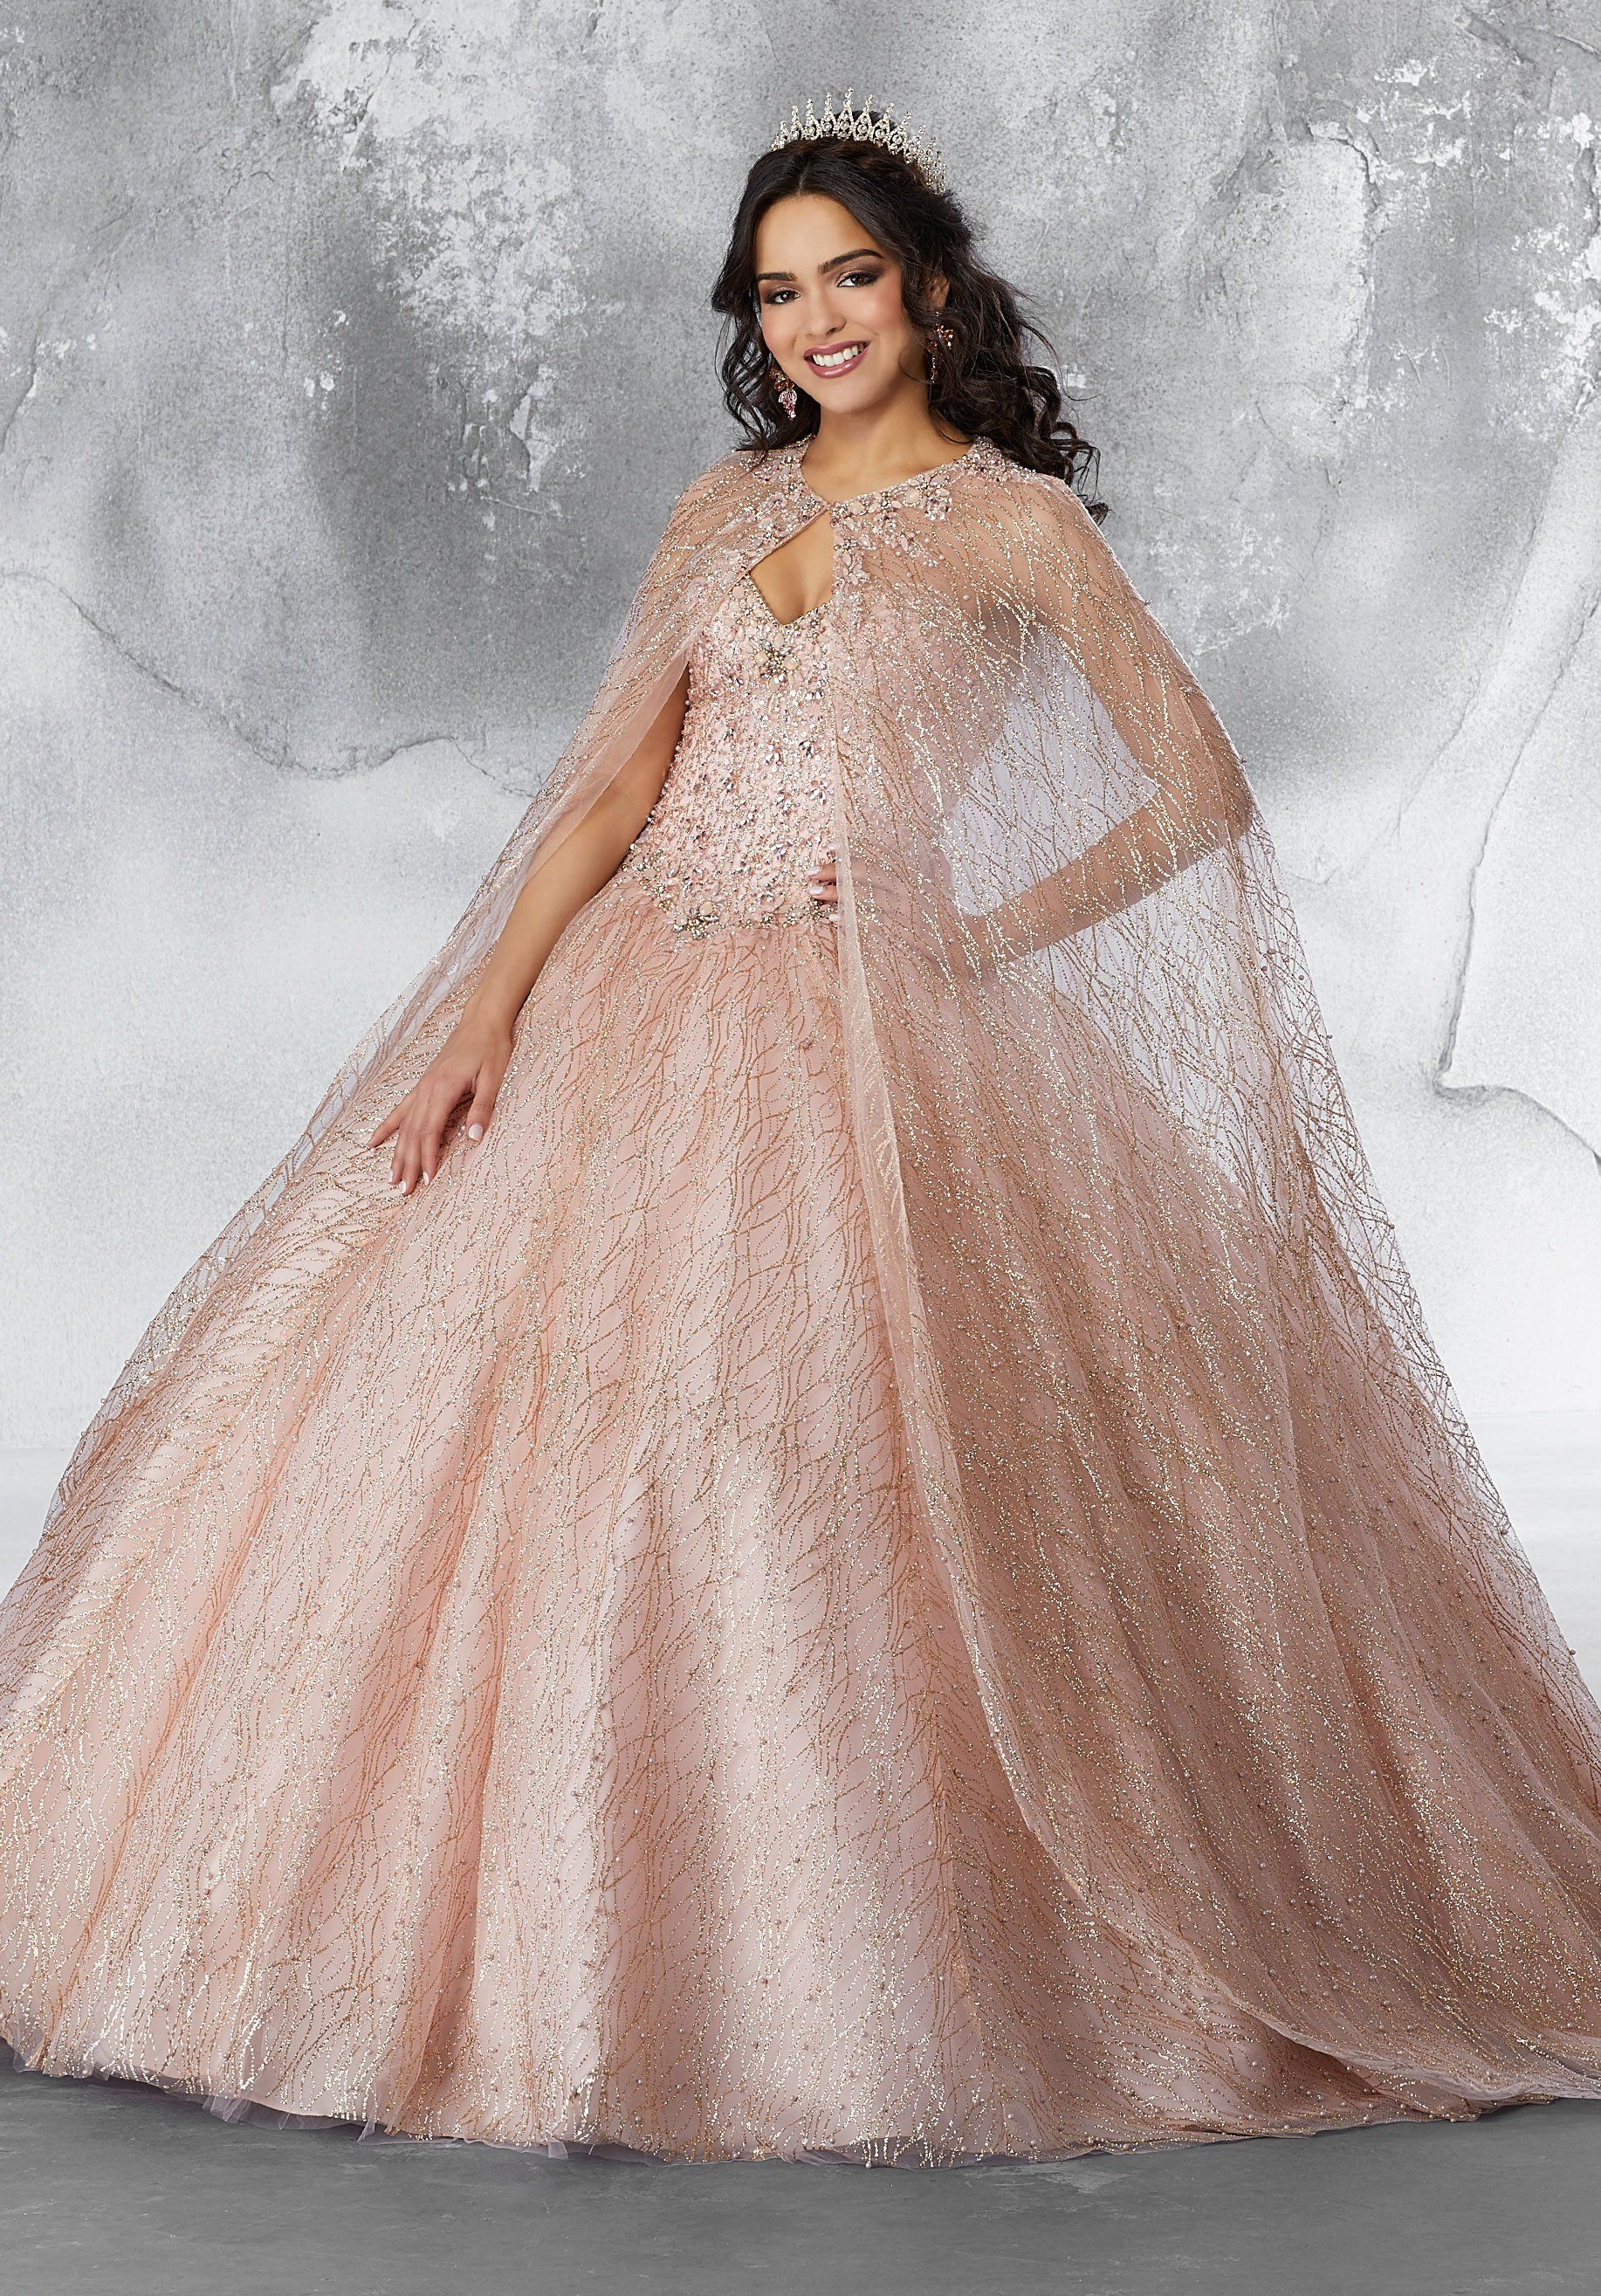 5b4c57c25  elegantboutique  morileedress  quinceaneradress  quinceaneracollection   misquinces  bestombres  fashion  style  outfit  fashionoftheday  clothes  ...